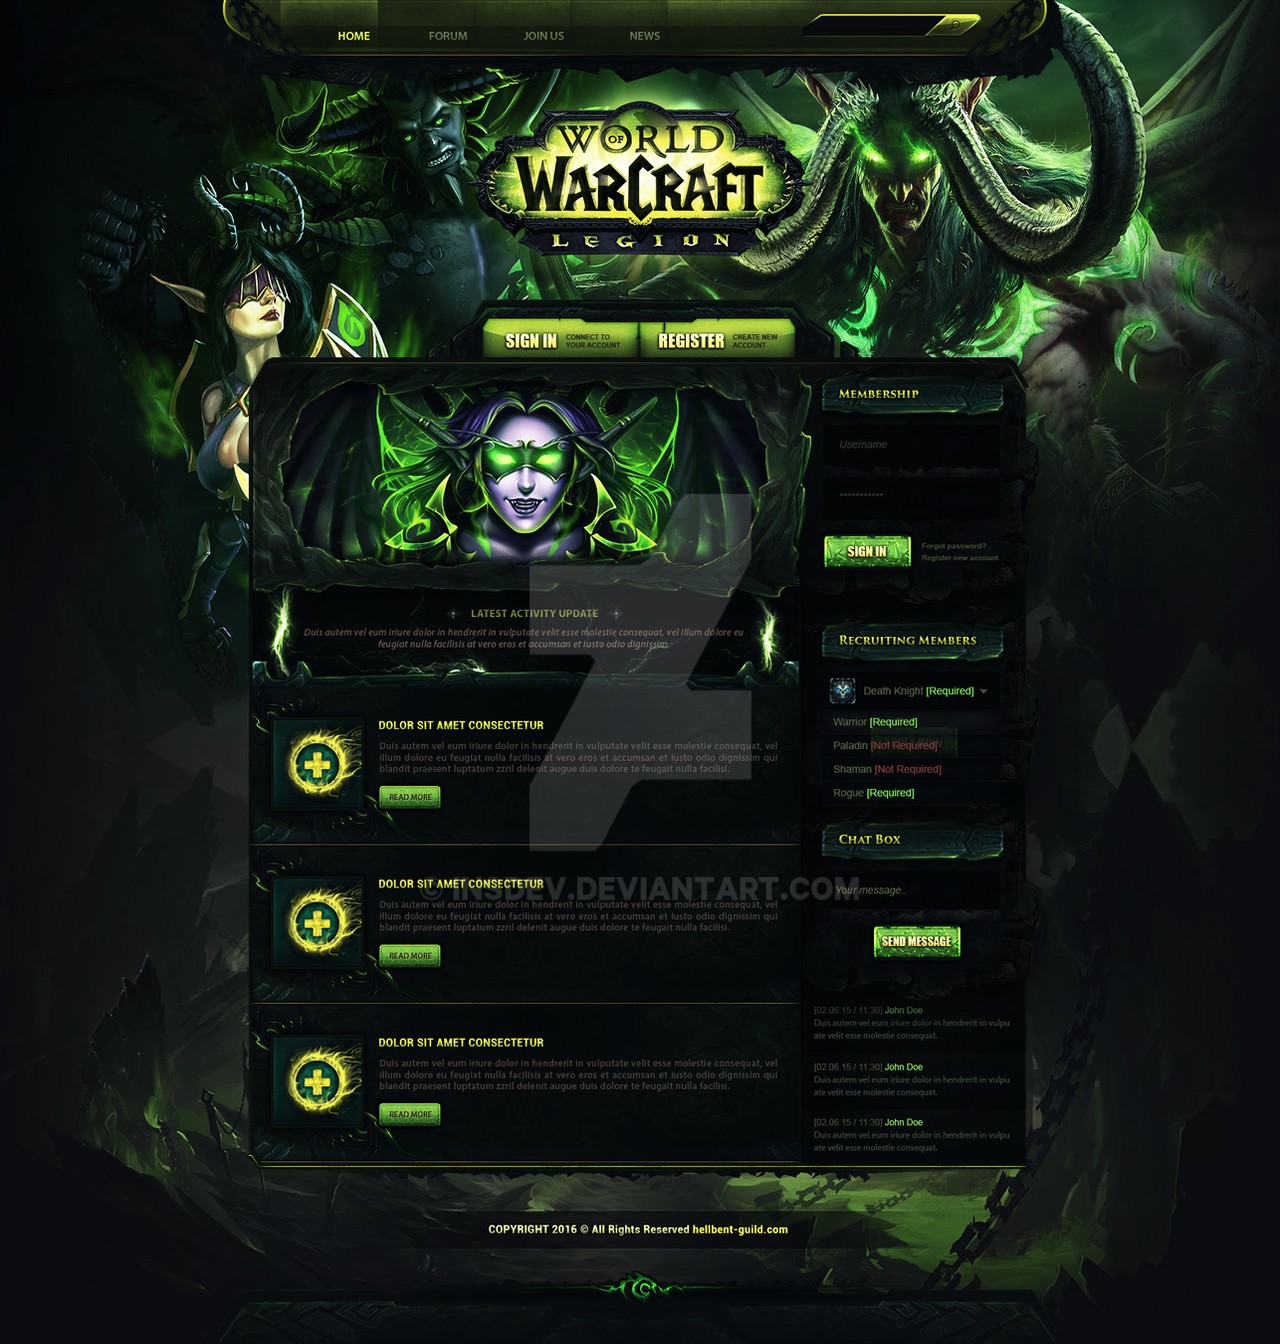 World of warcraft dating website